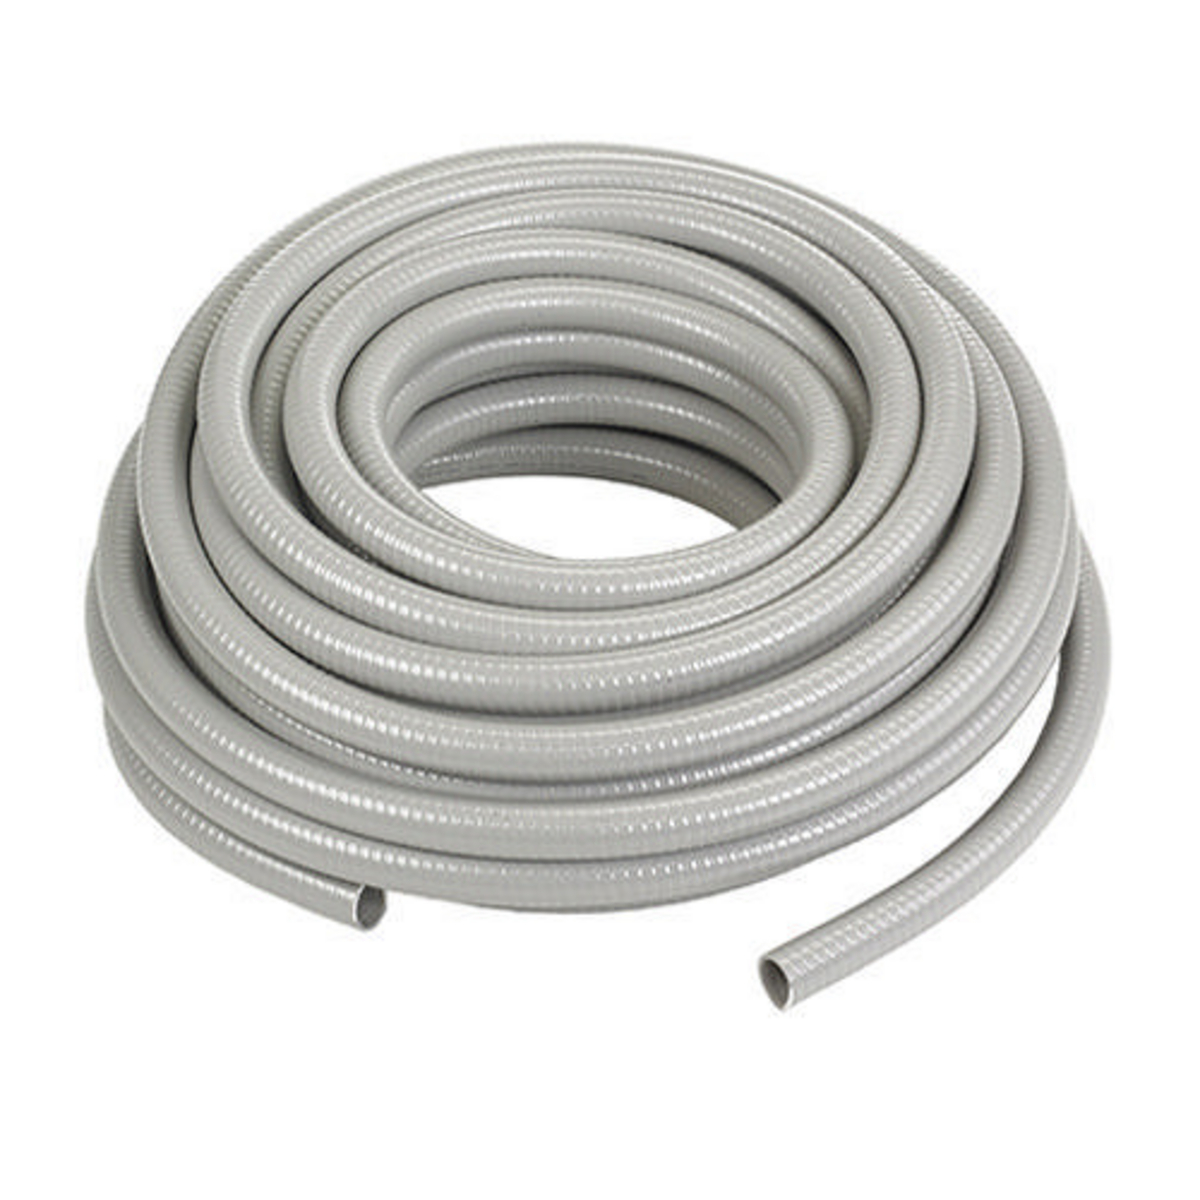 HUBG1050 NM POLYTUFF I, GY 1/2IN ,G1050, HUBBELL